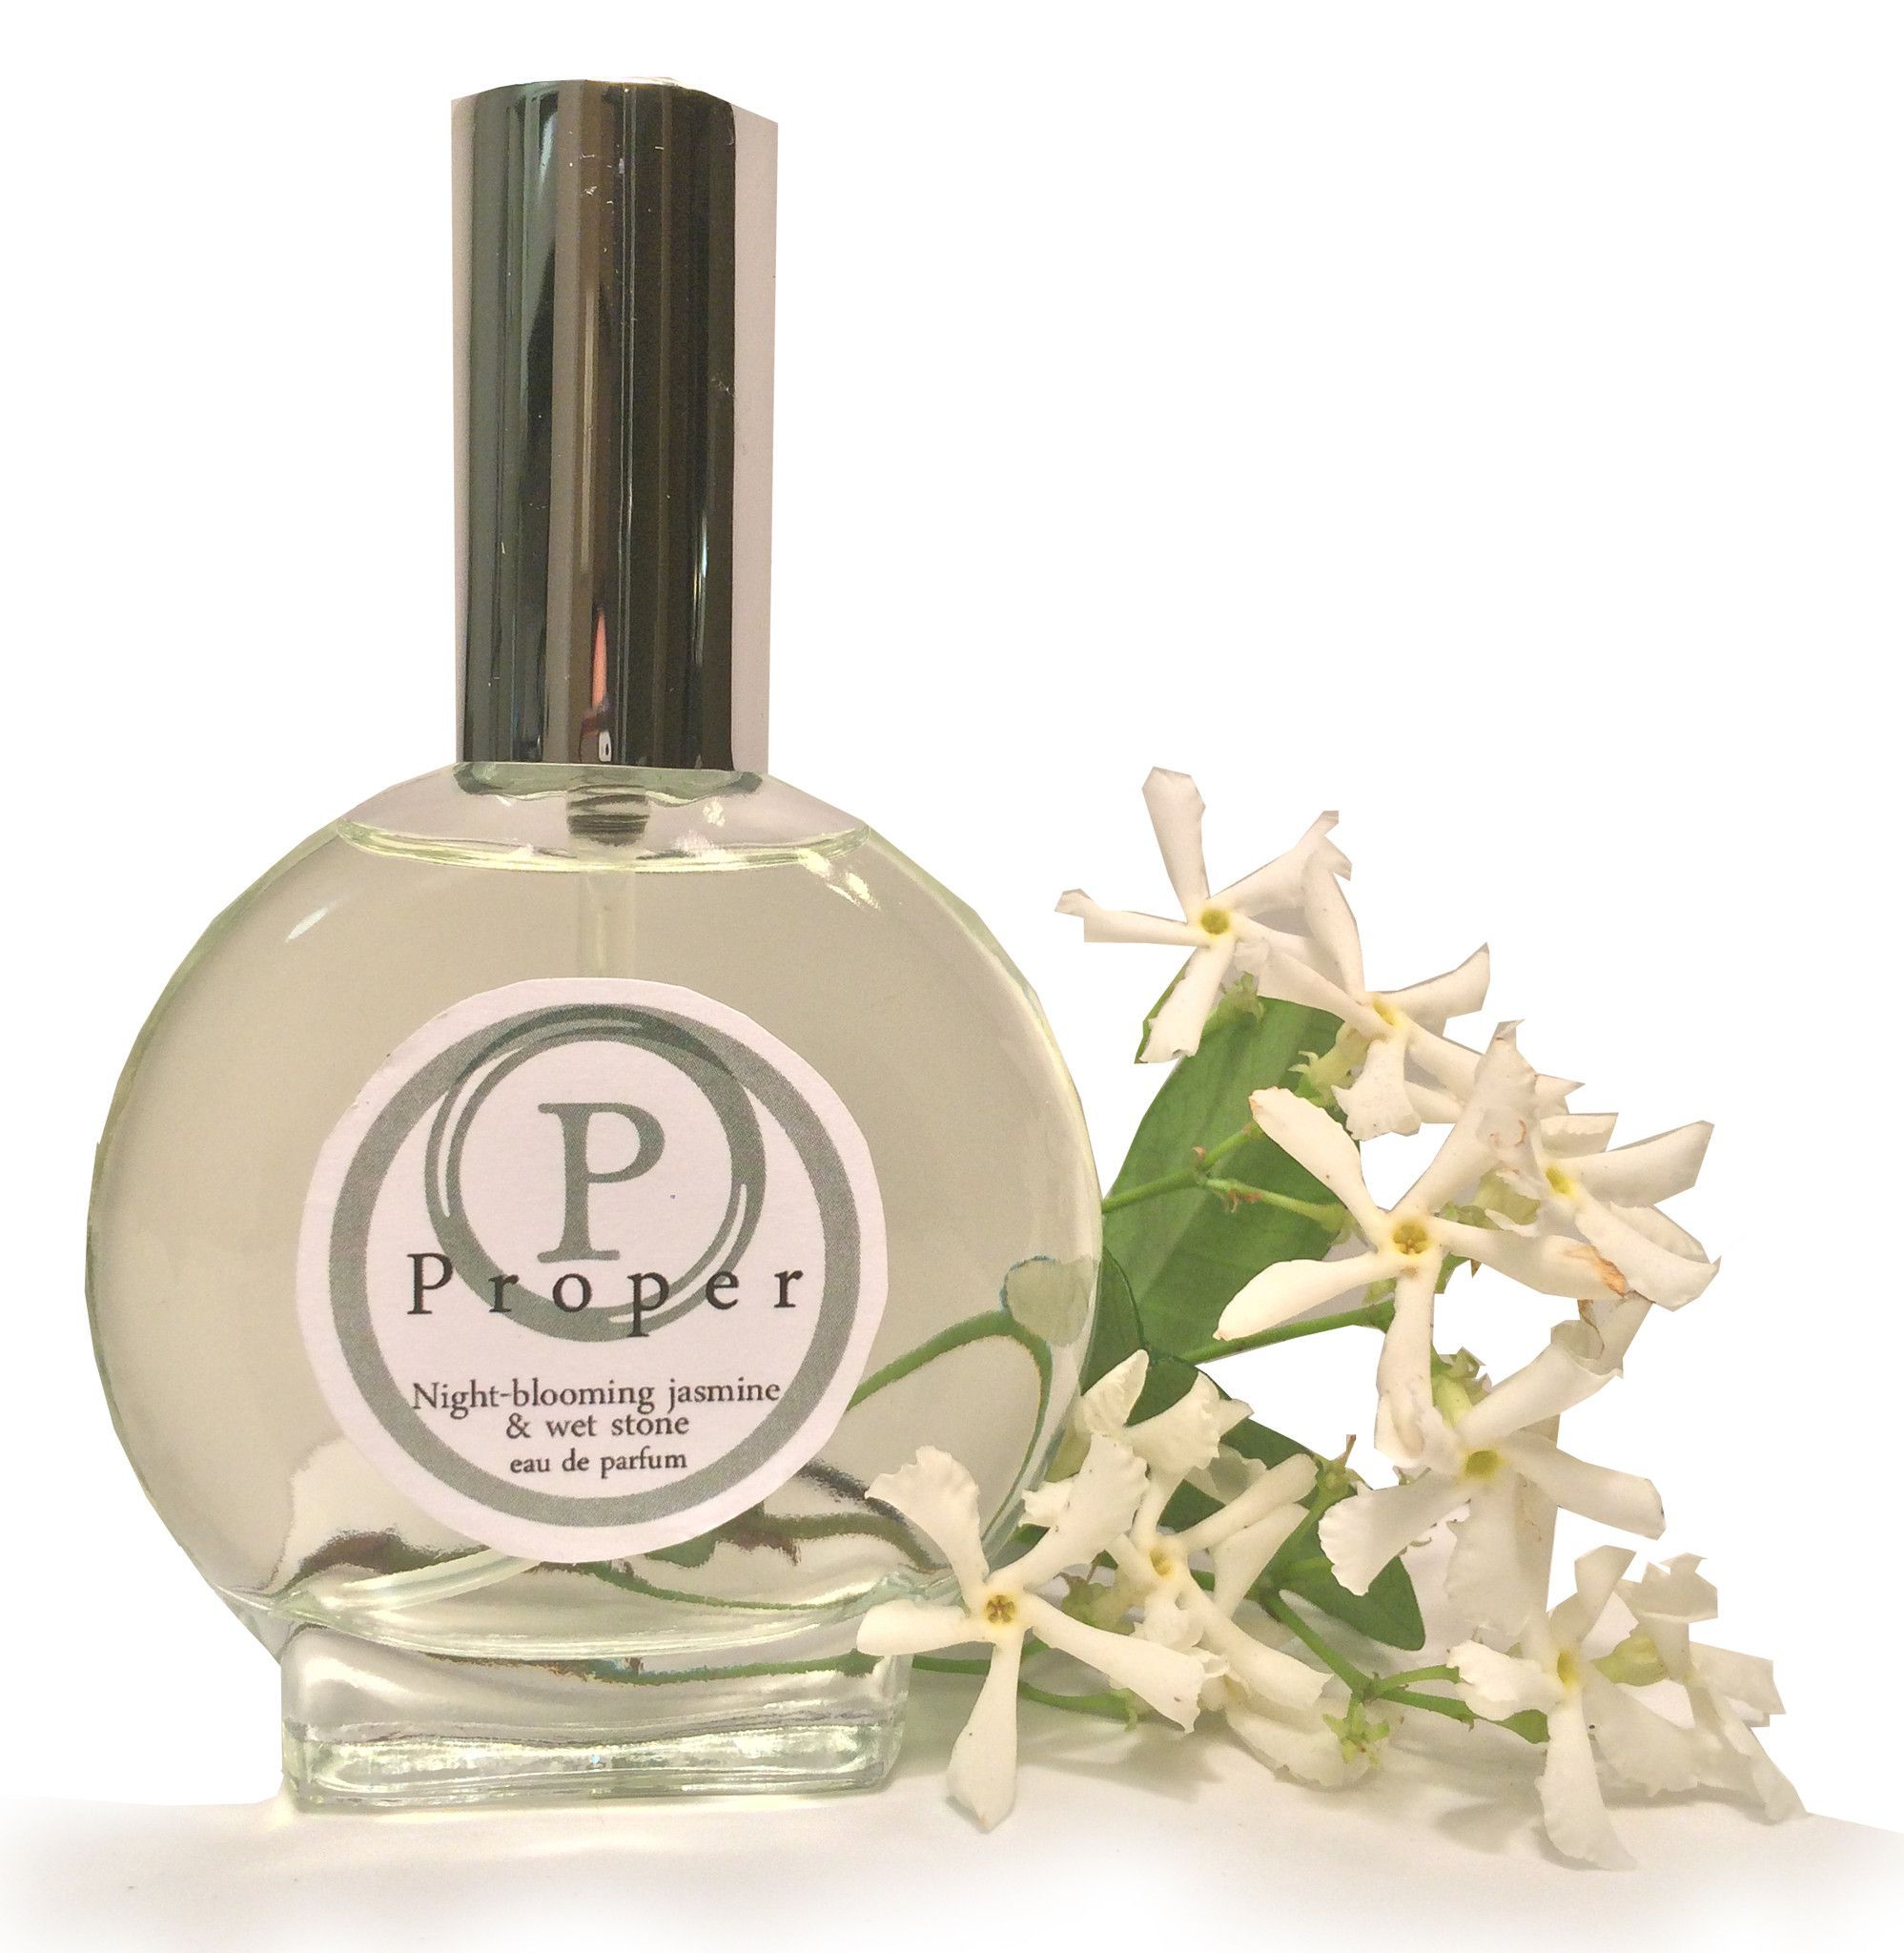 Proper Night Blooming Jasmine Eau De Parfum Fragrance Perfume Bloom Hair Makeup